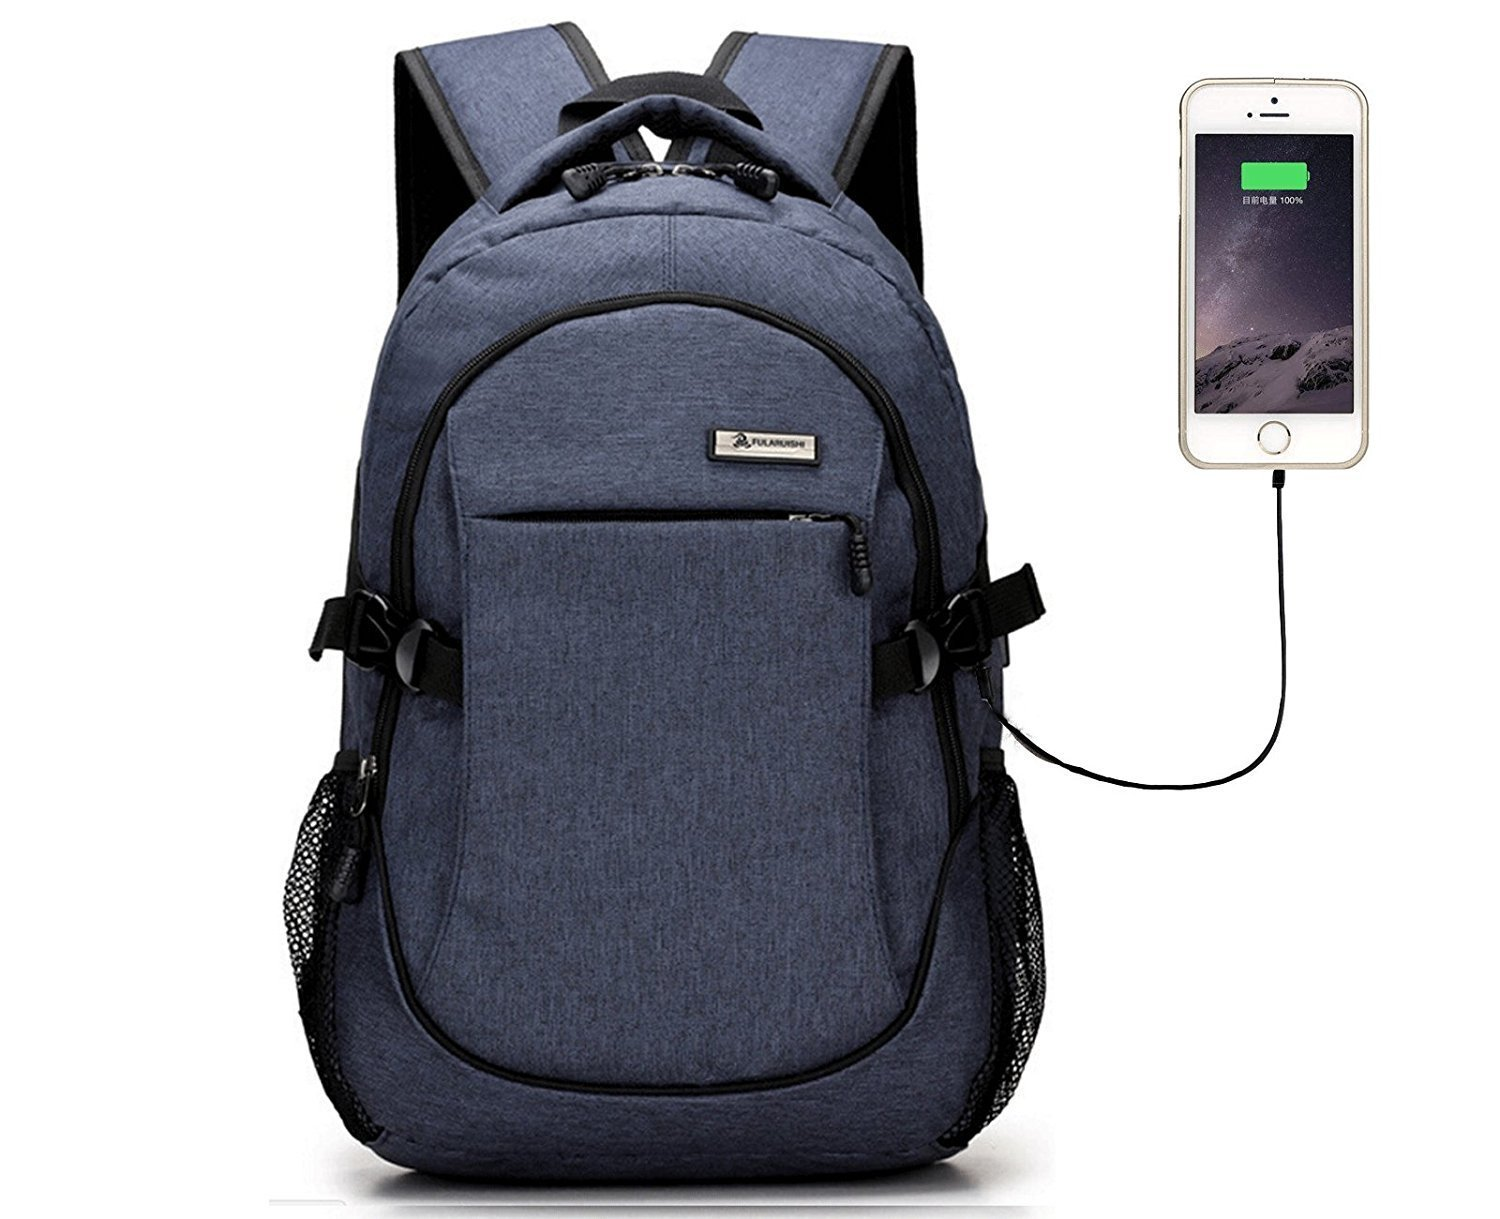 12 Smart Backpacks for Adults That Want to